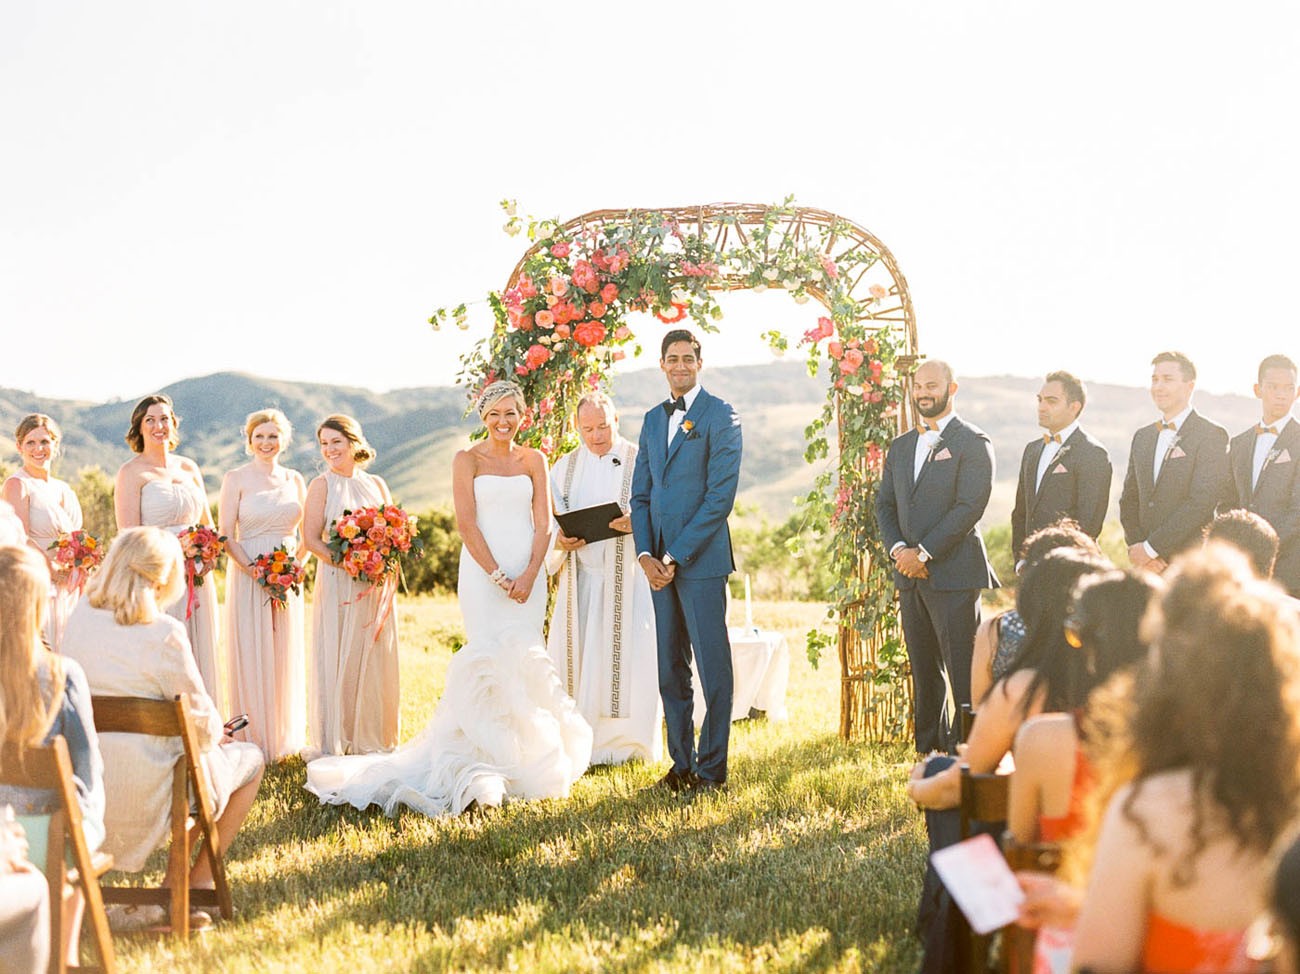 american weddings Morning all i thought i'd open up today with something a little bit different a guest post by erika unbehaun of flutterfly events.